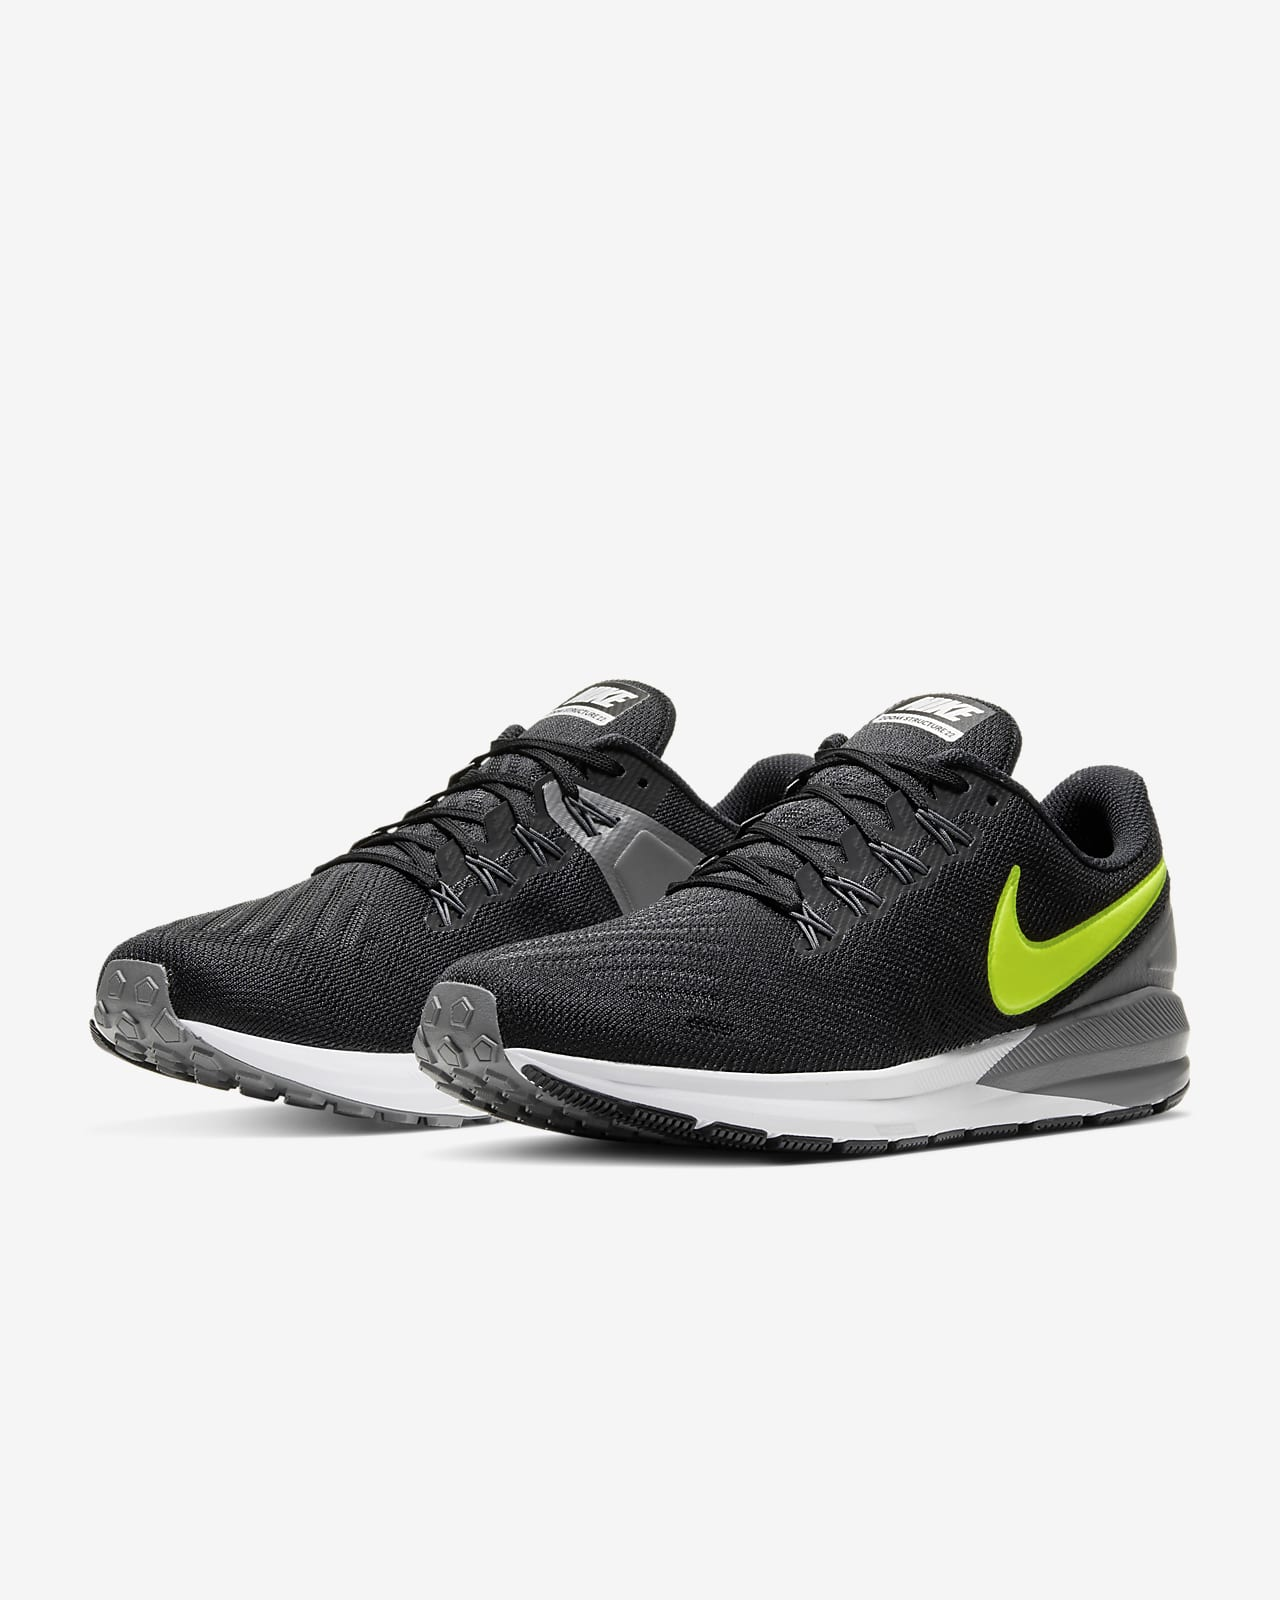 Nike Air Zoom Structure 22 Men's